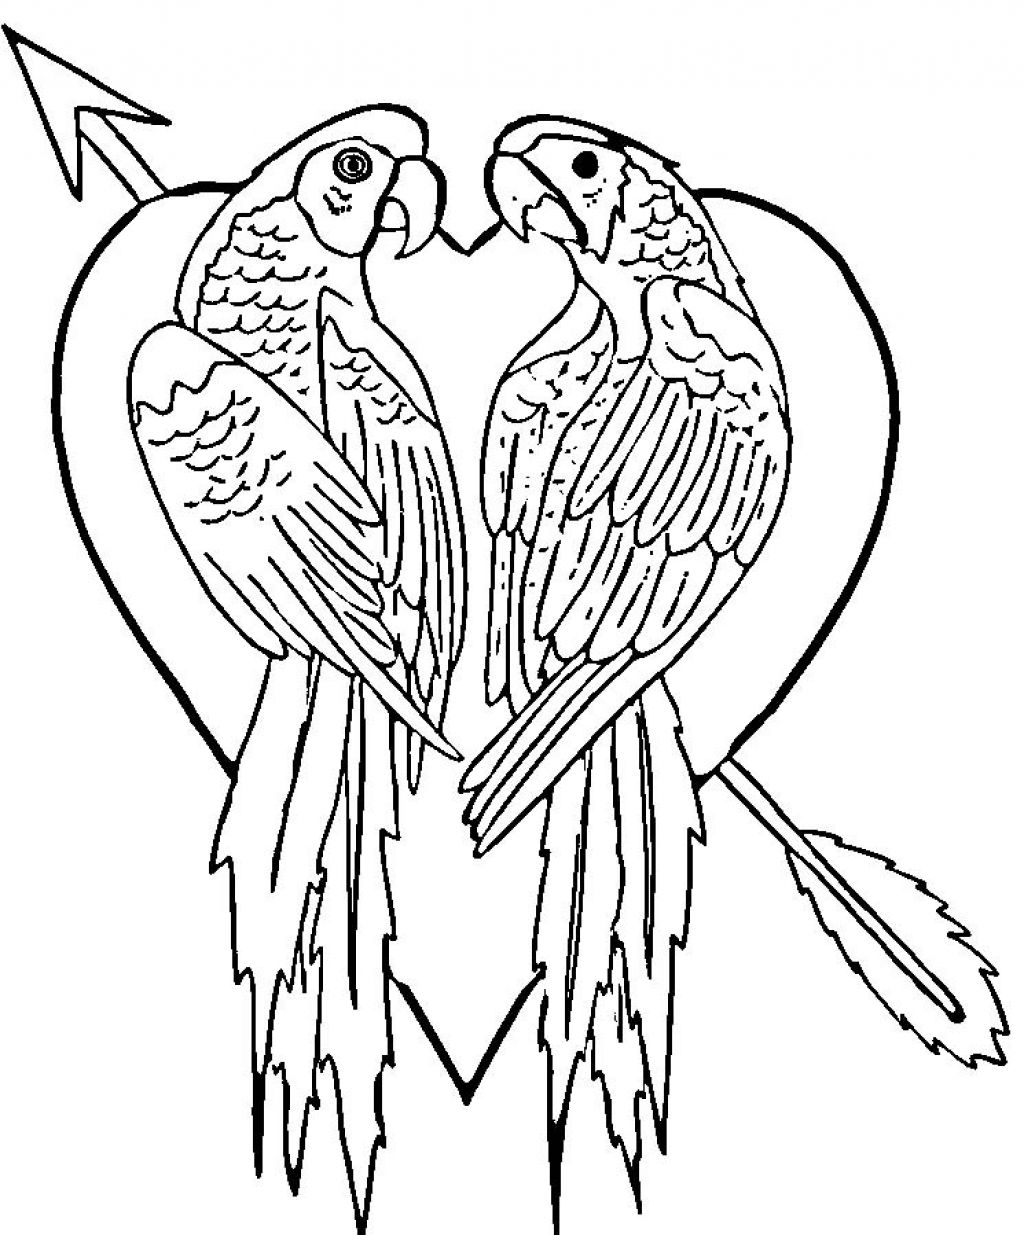 parrot pictures to print amazing parrot coloring page download print online parrot print pictures to